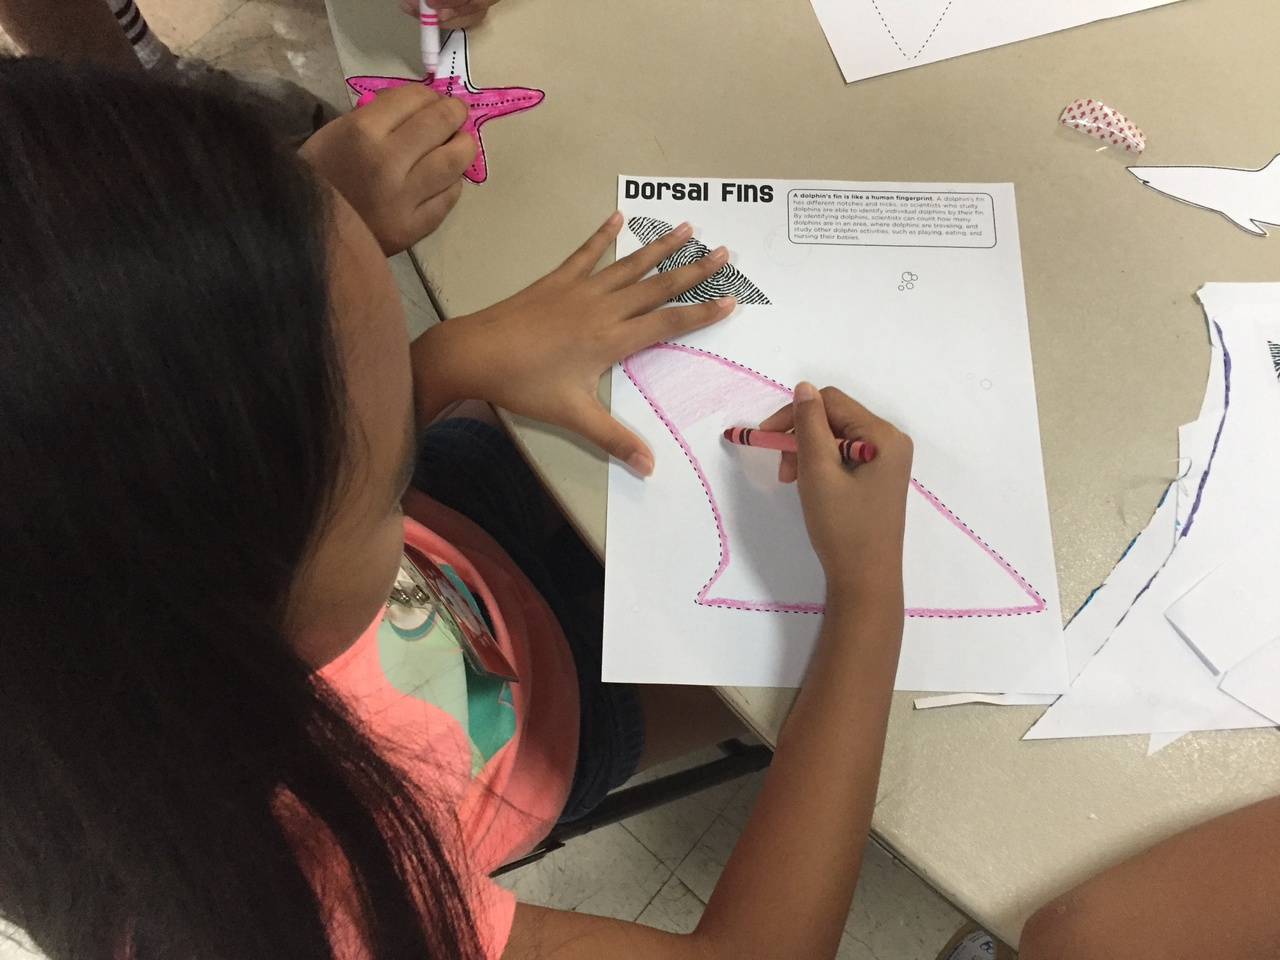 A Camp Maga'lani student creates her unique dorsal fin.